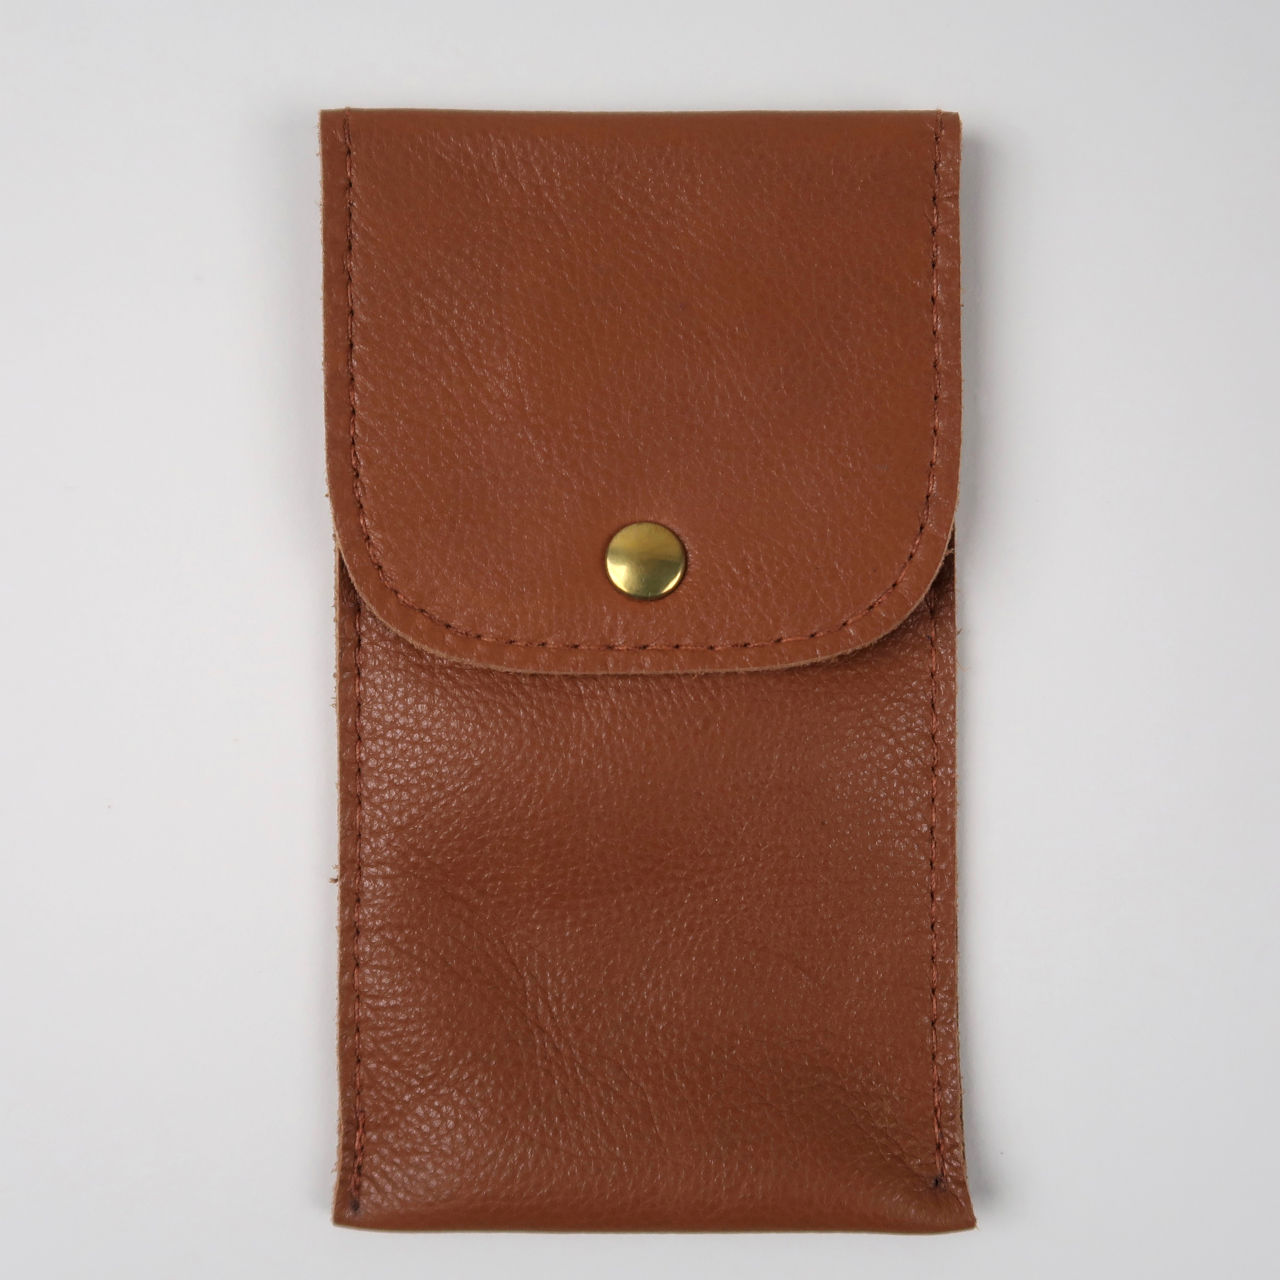 Tan leather wristwatch pouch